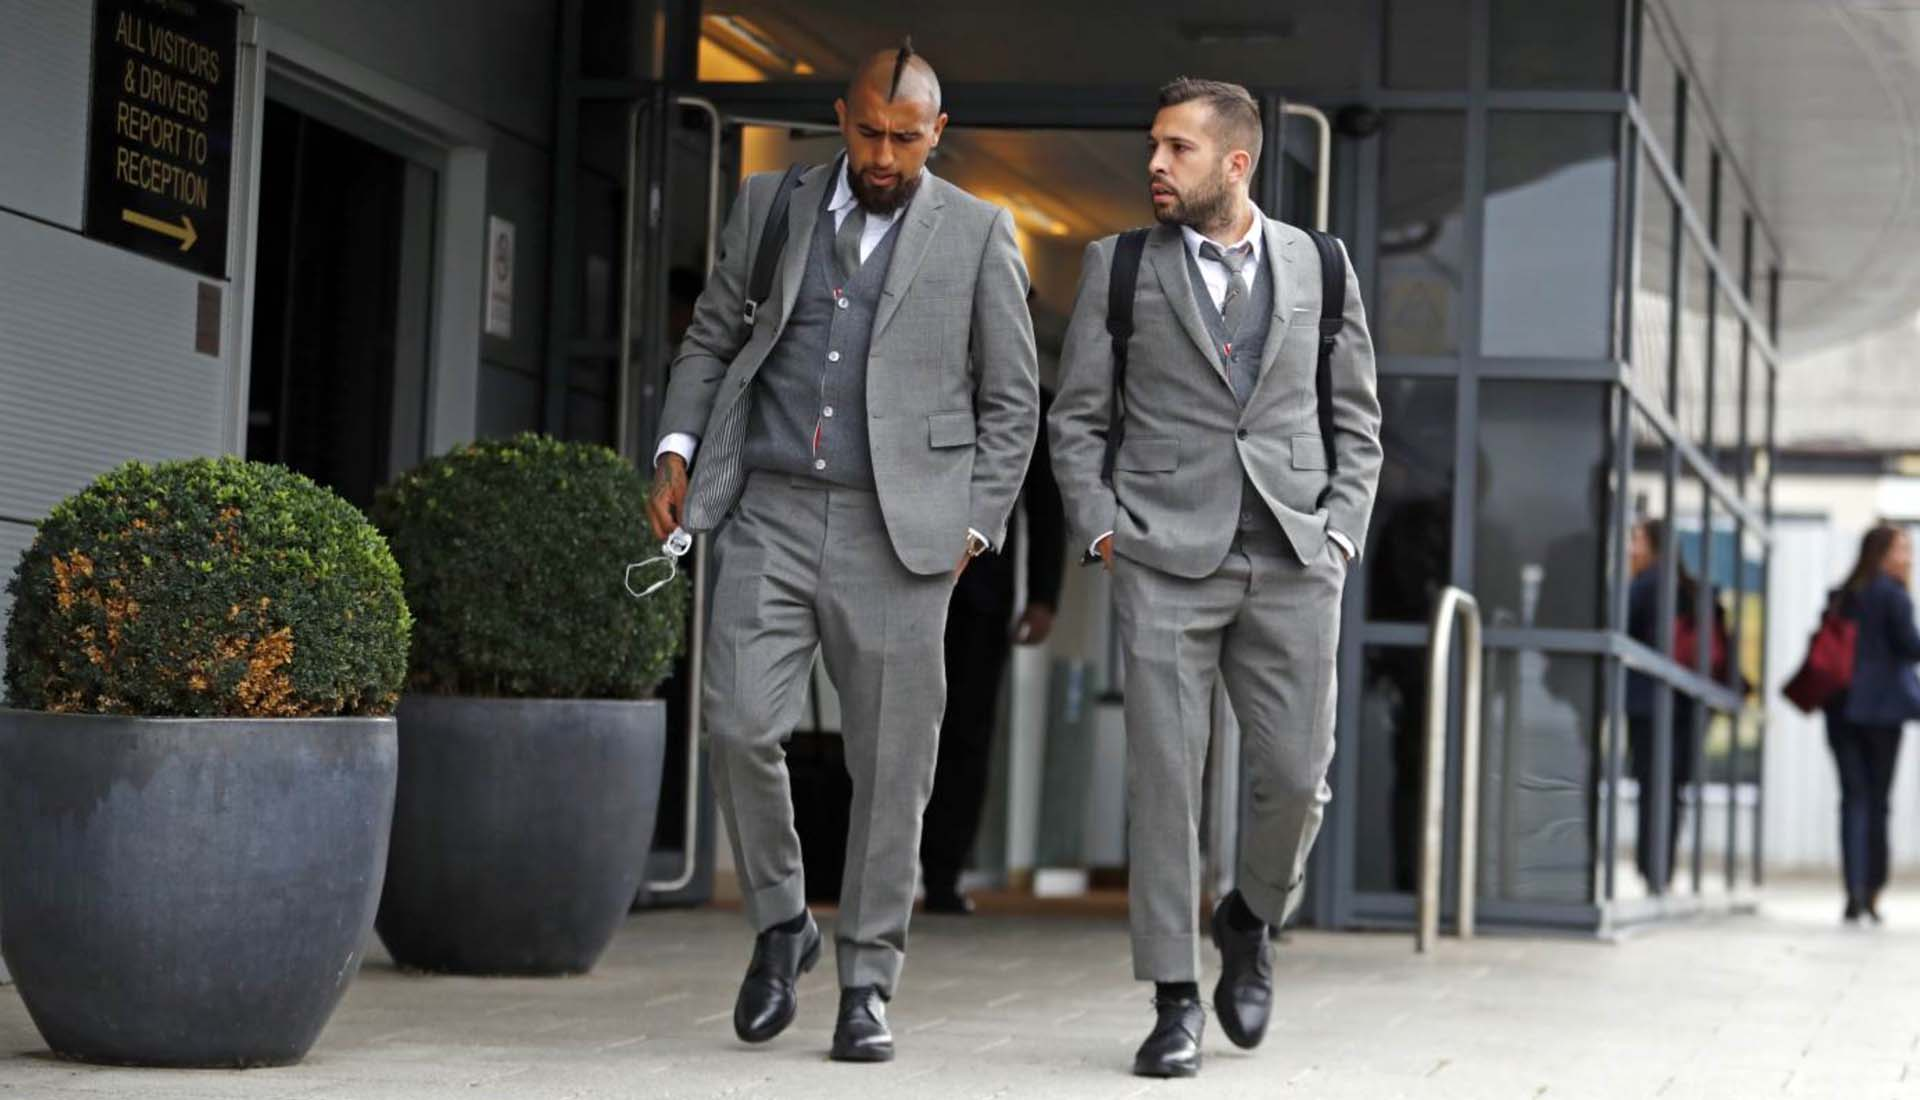 17ecccea9ca4 Barcelona Players Debut Thom Browne Suits - SoccerBible